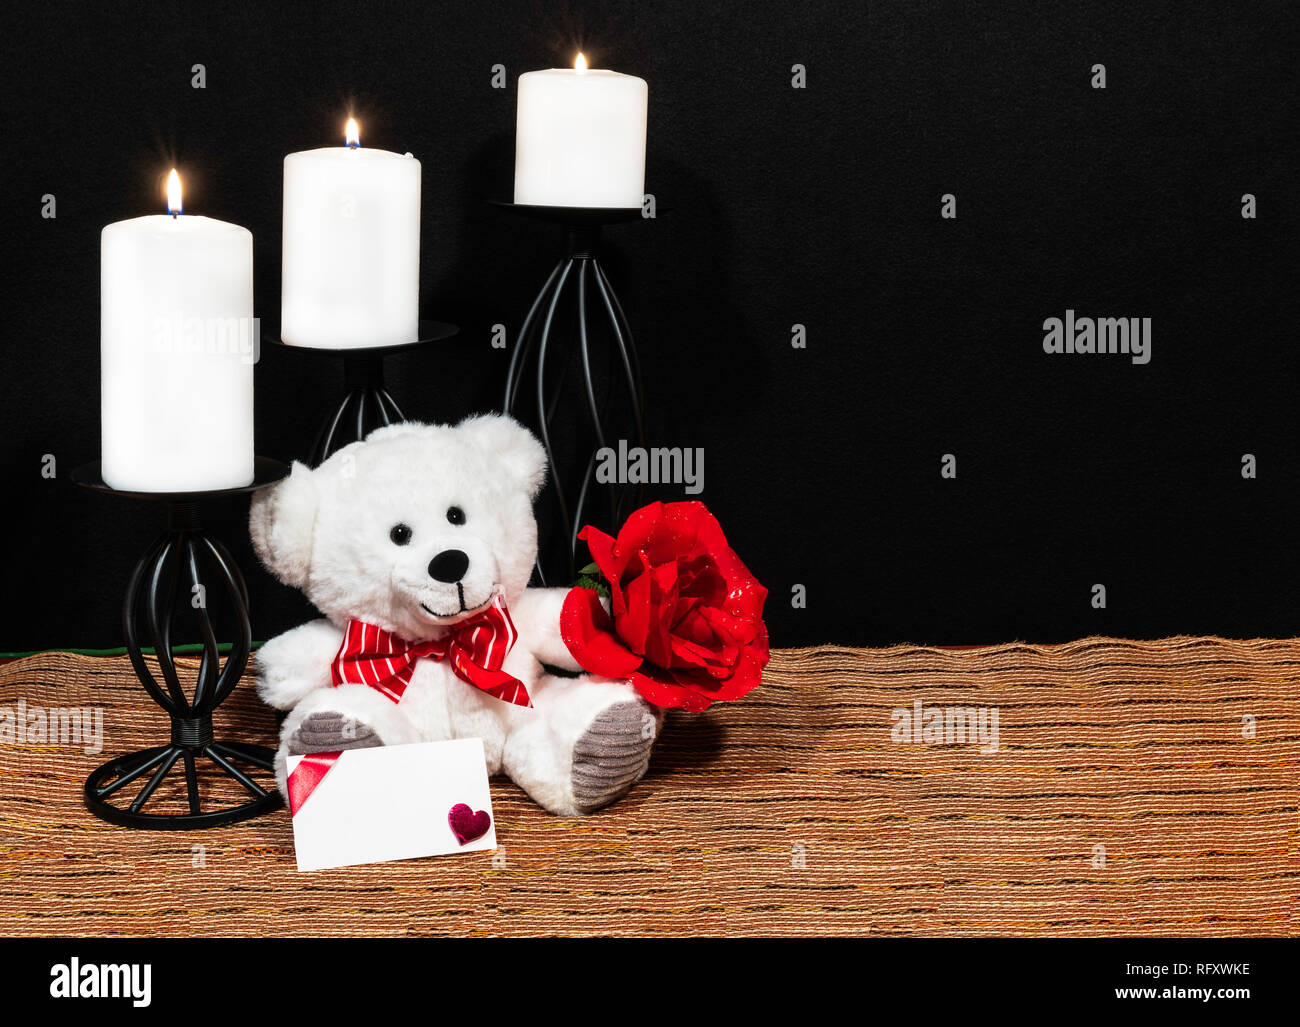 Cudlely teddy bear with red bow tie, red rose, white candles perched on black candle holders on mesh place mat and wooden table with card and dark bac - Stock Image